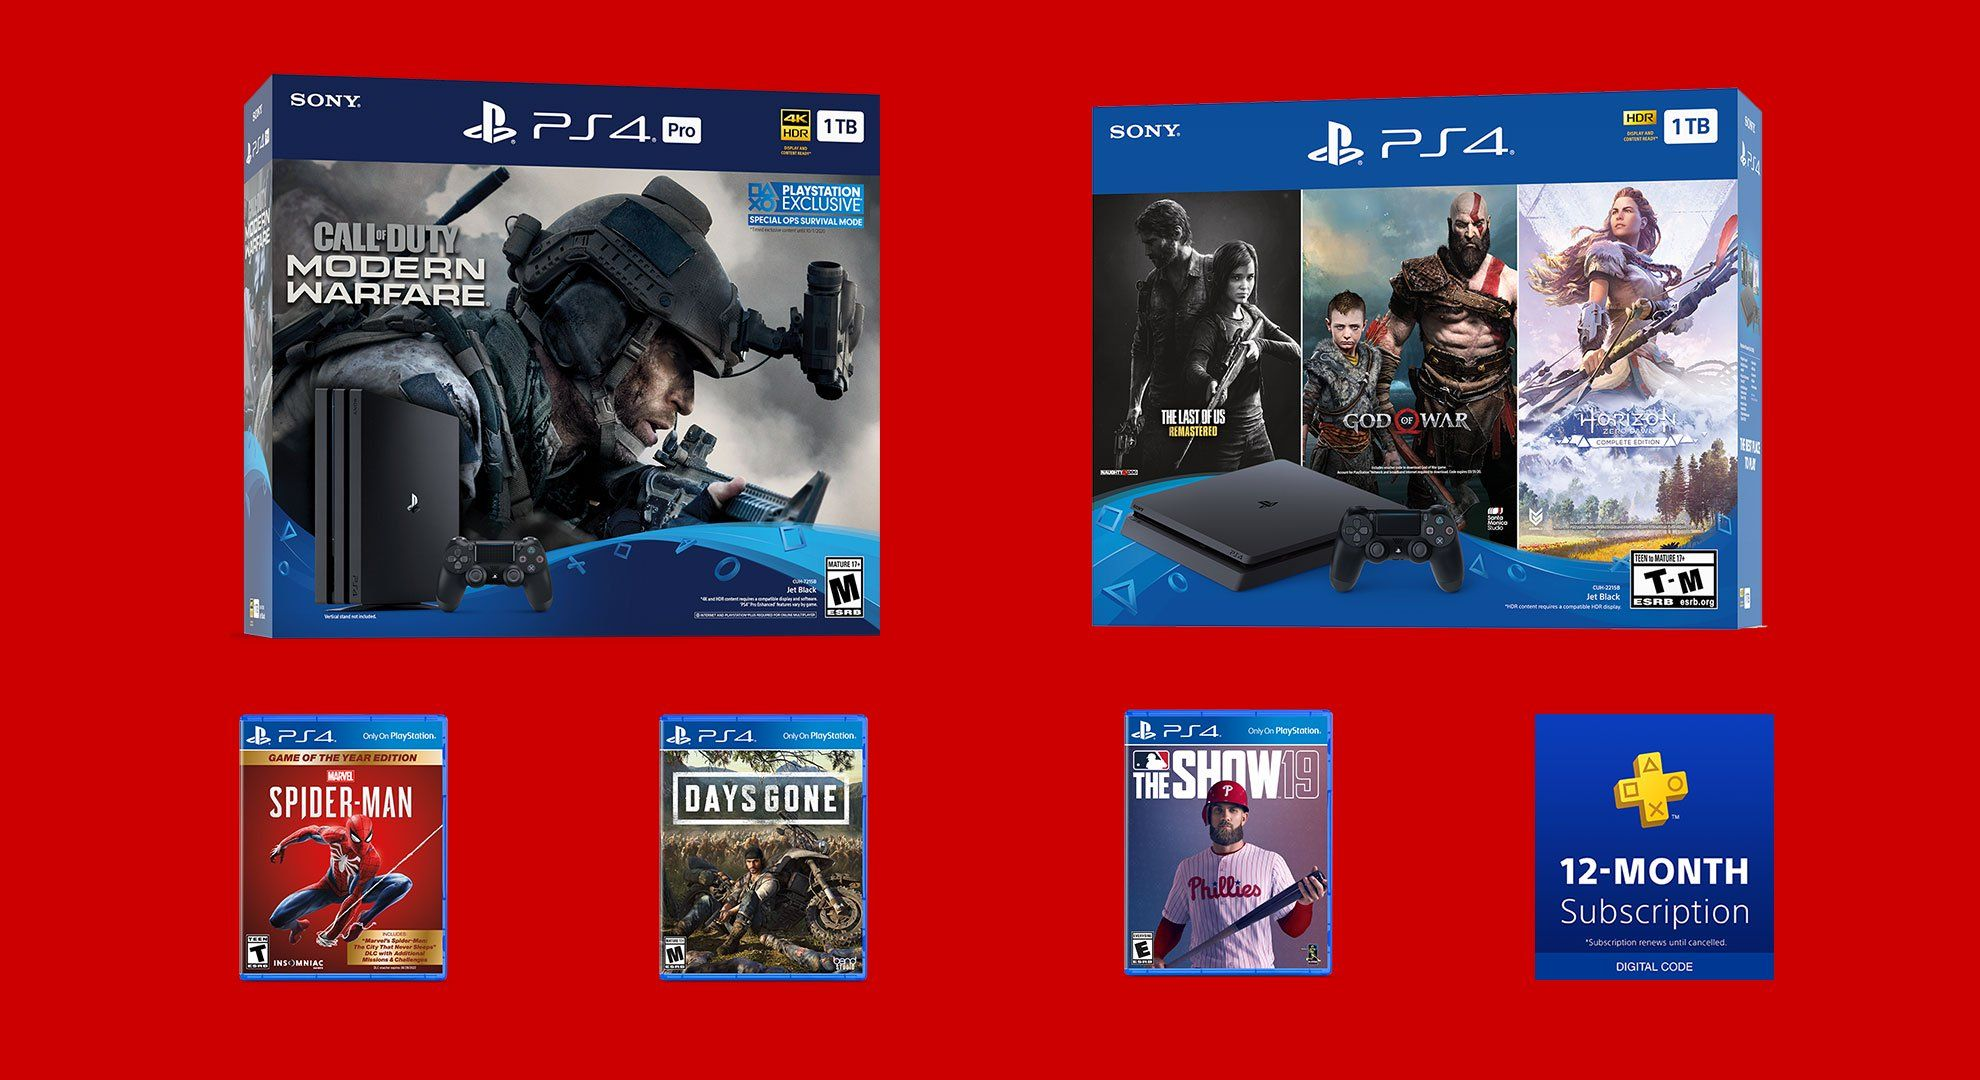 All The Playstation 4 Black Friday Deals That Already Went Live Playstation Playstation 4 Black Friday Deals